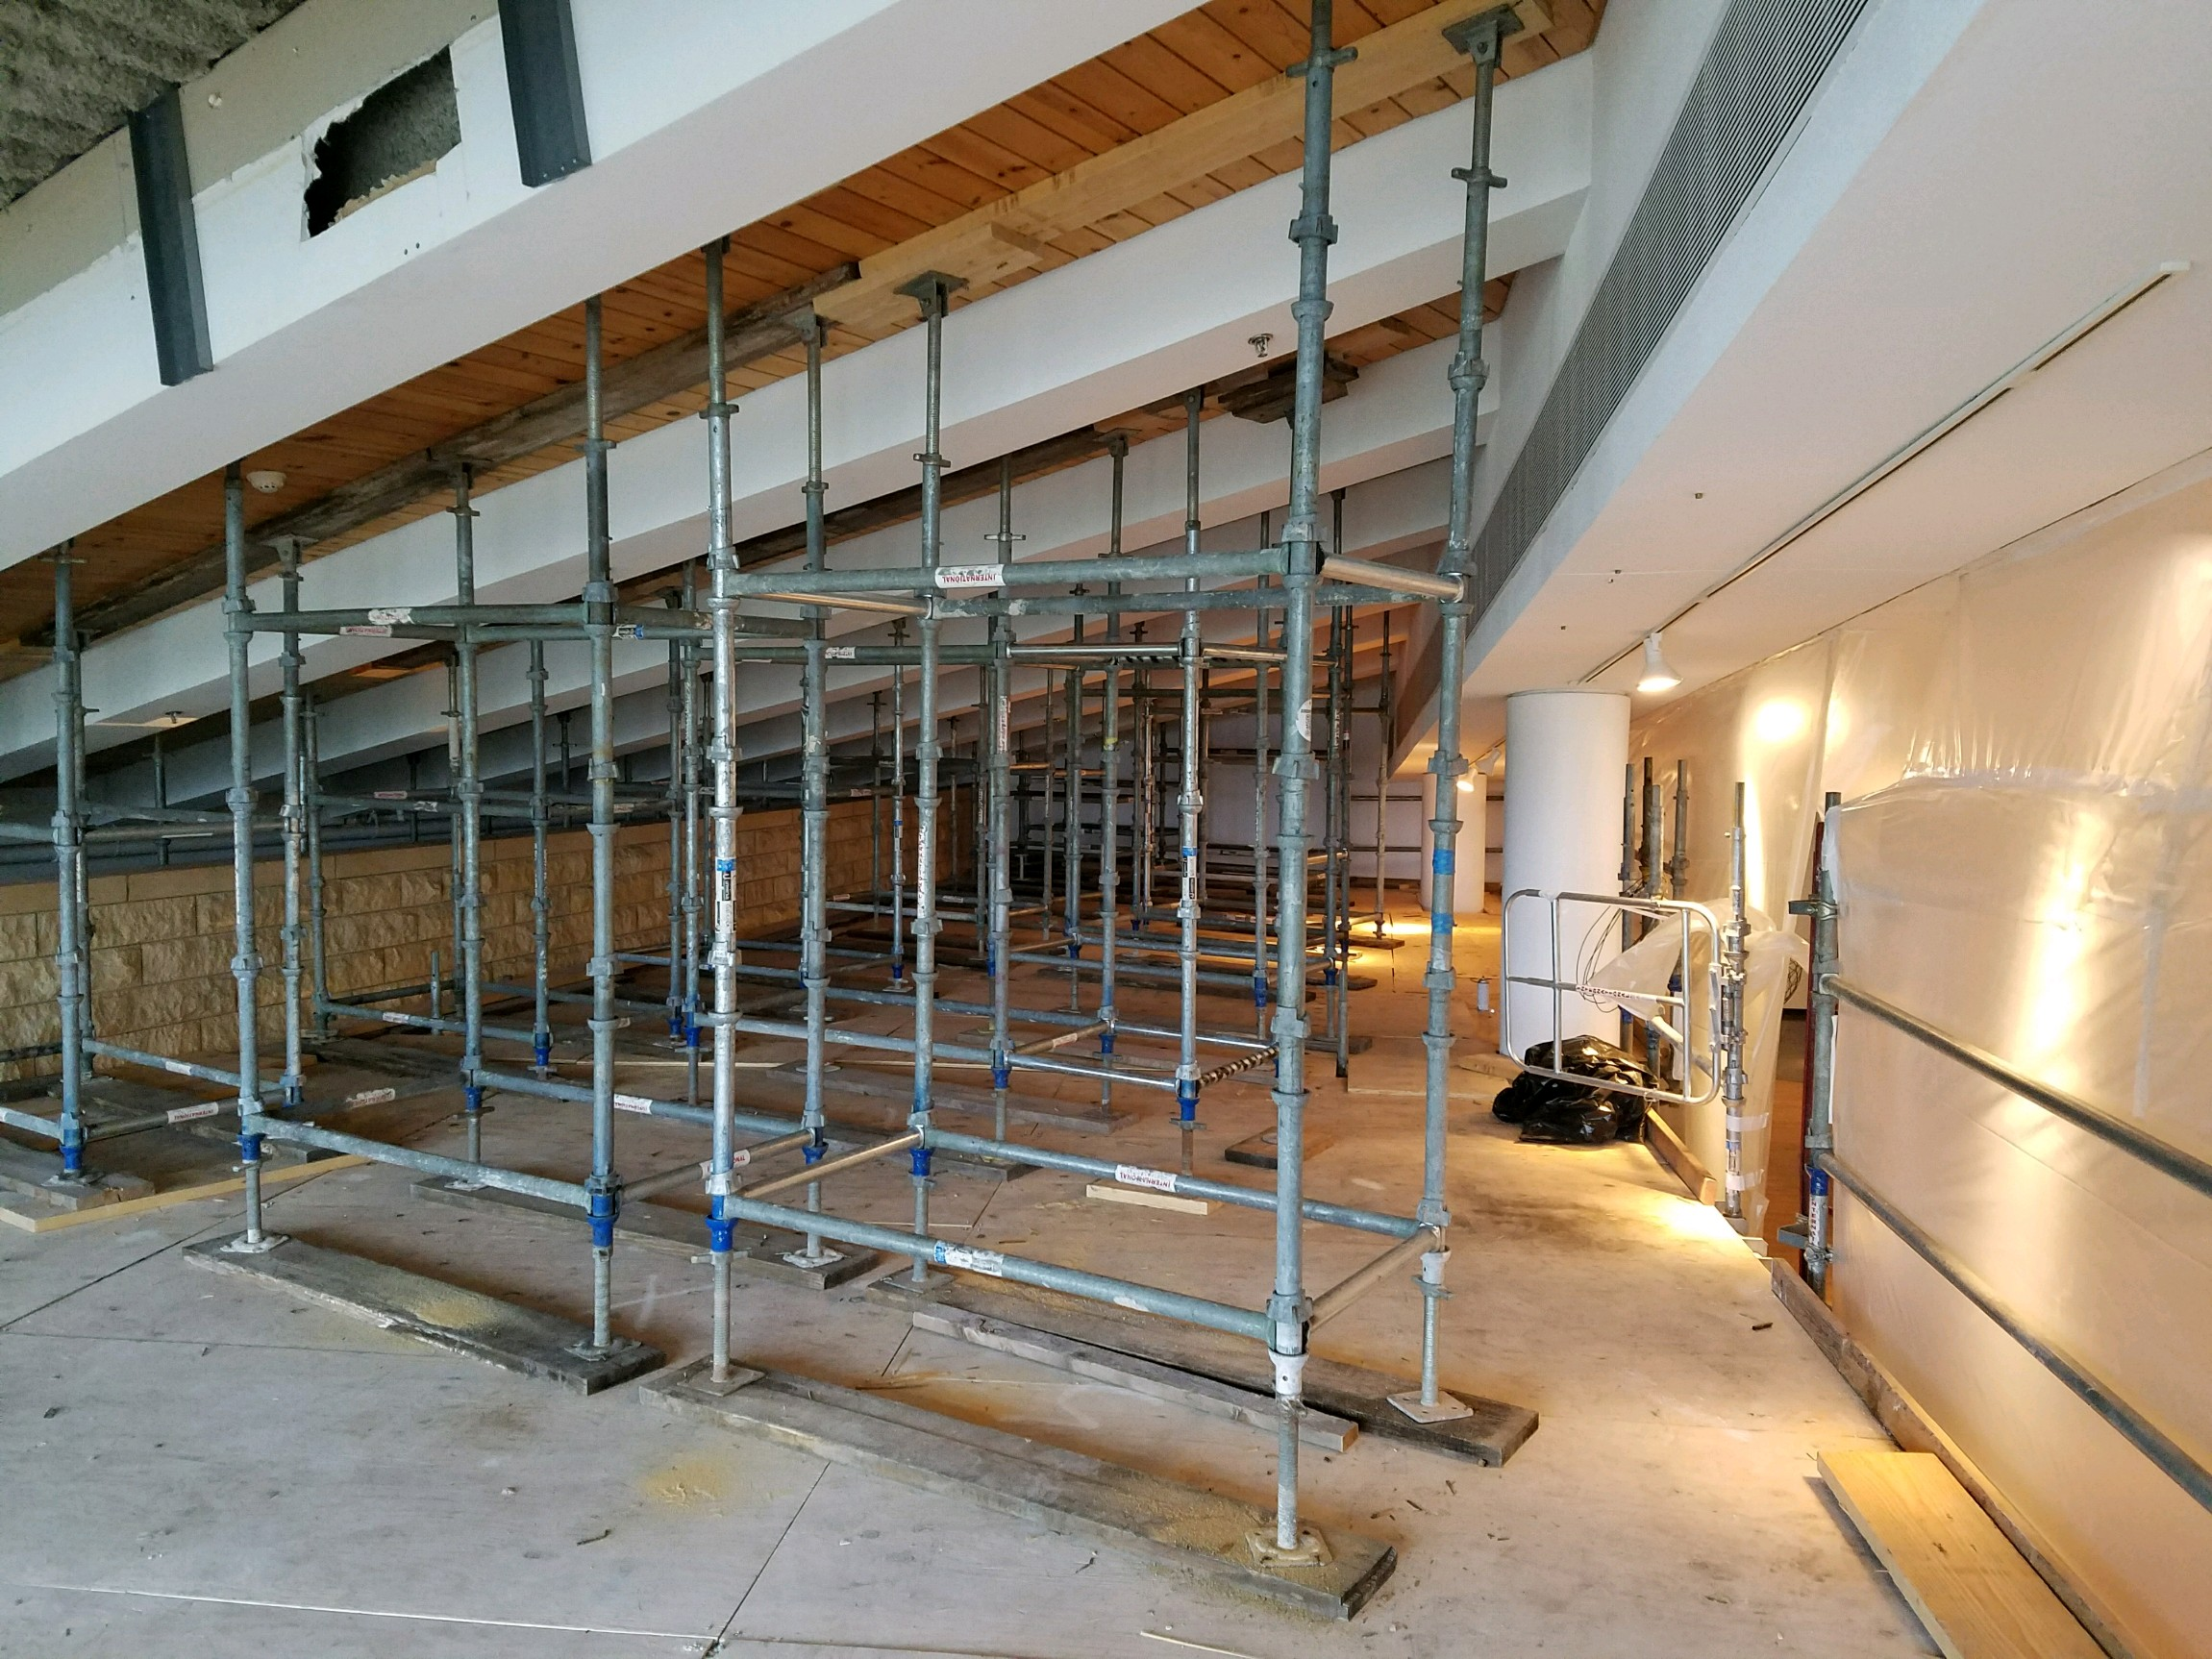 cuplock scaffolding system shown in a rooftop crawl space for a building restoration project - International Equipment